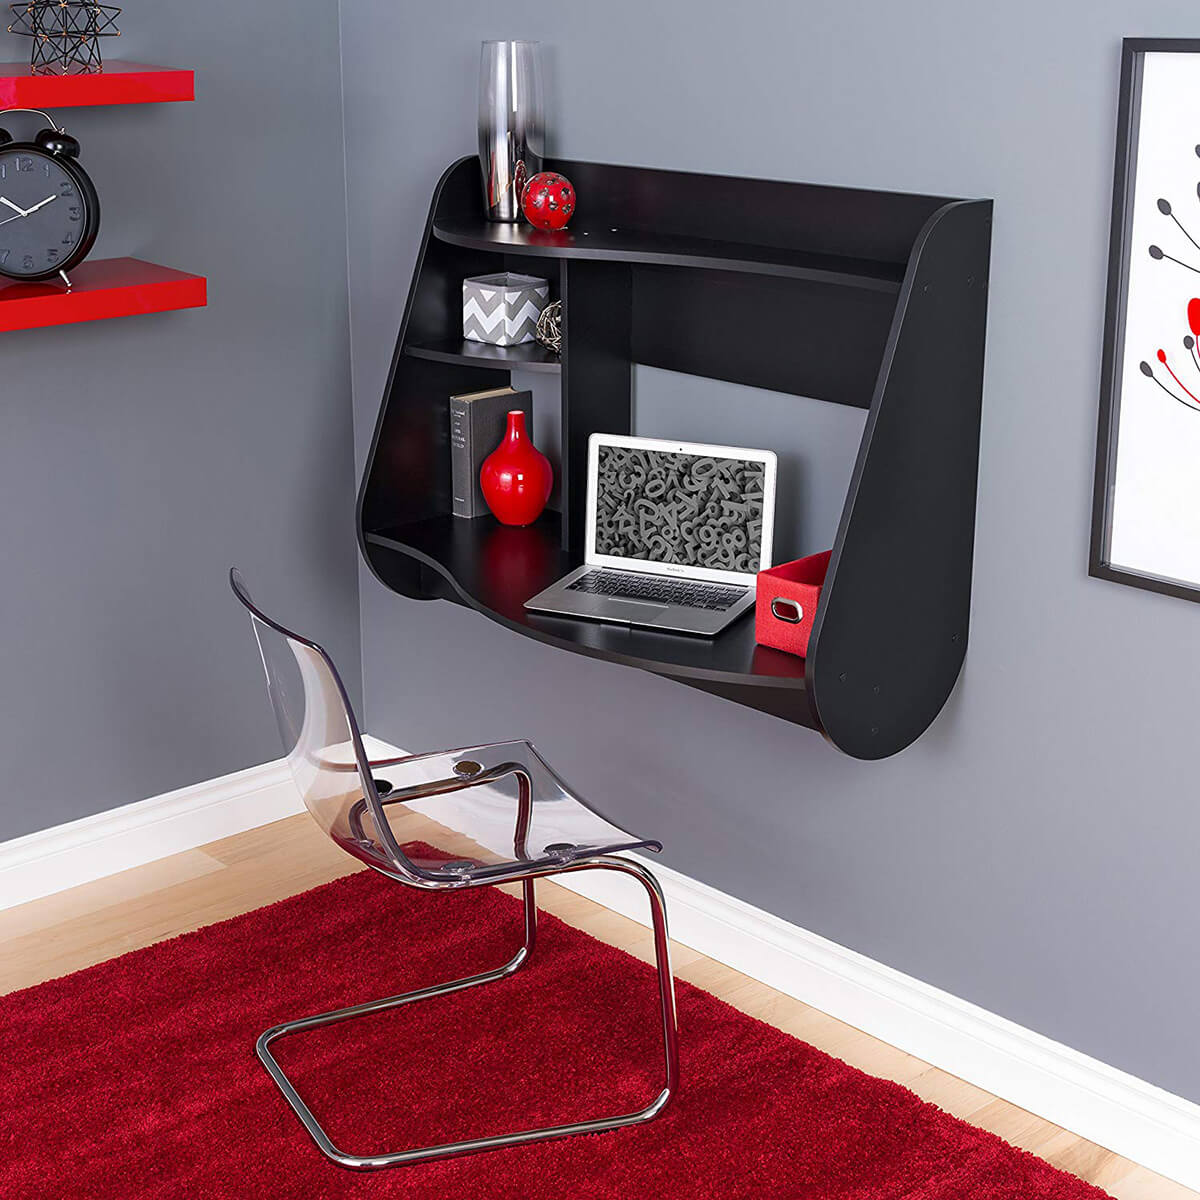 Awesome Idea for a Contemporary Wall Desk